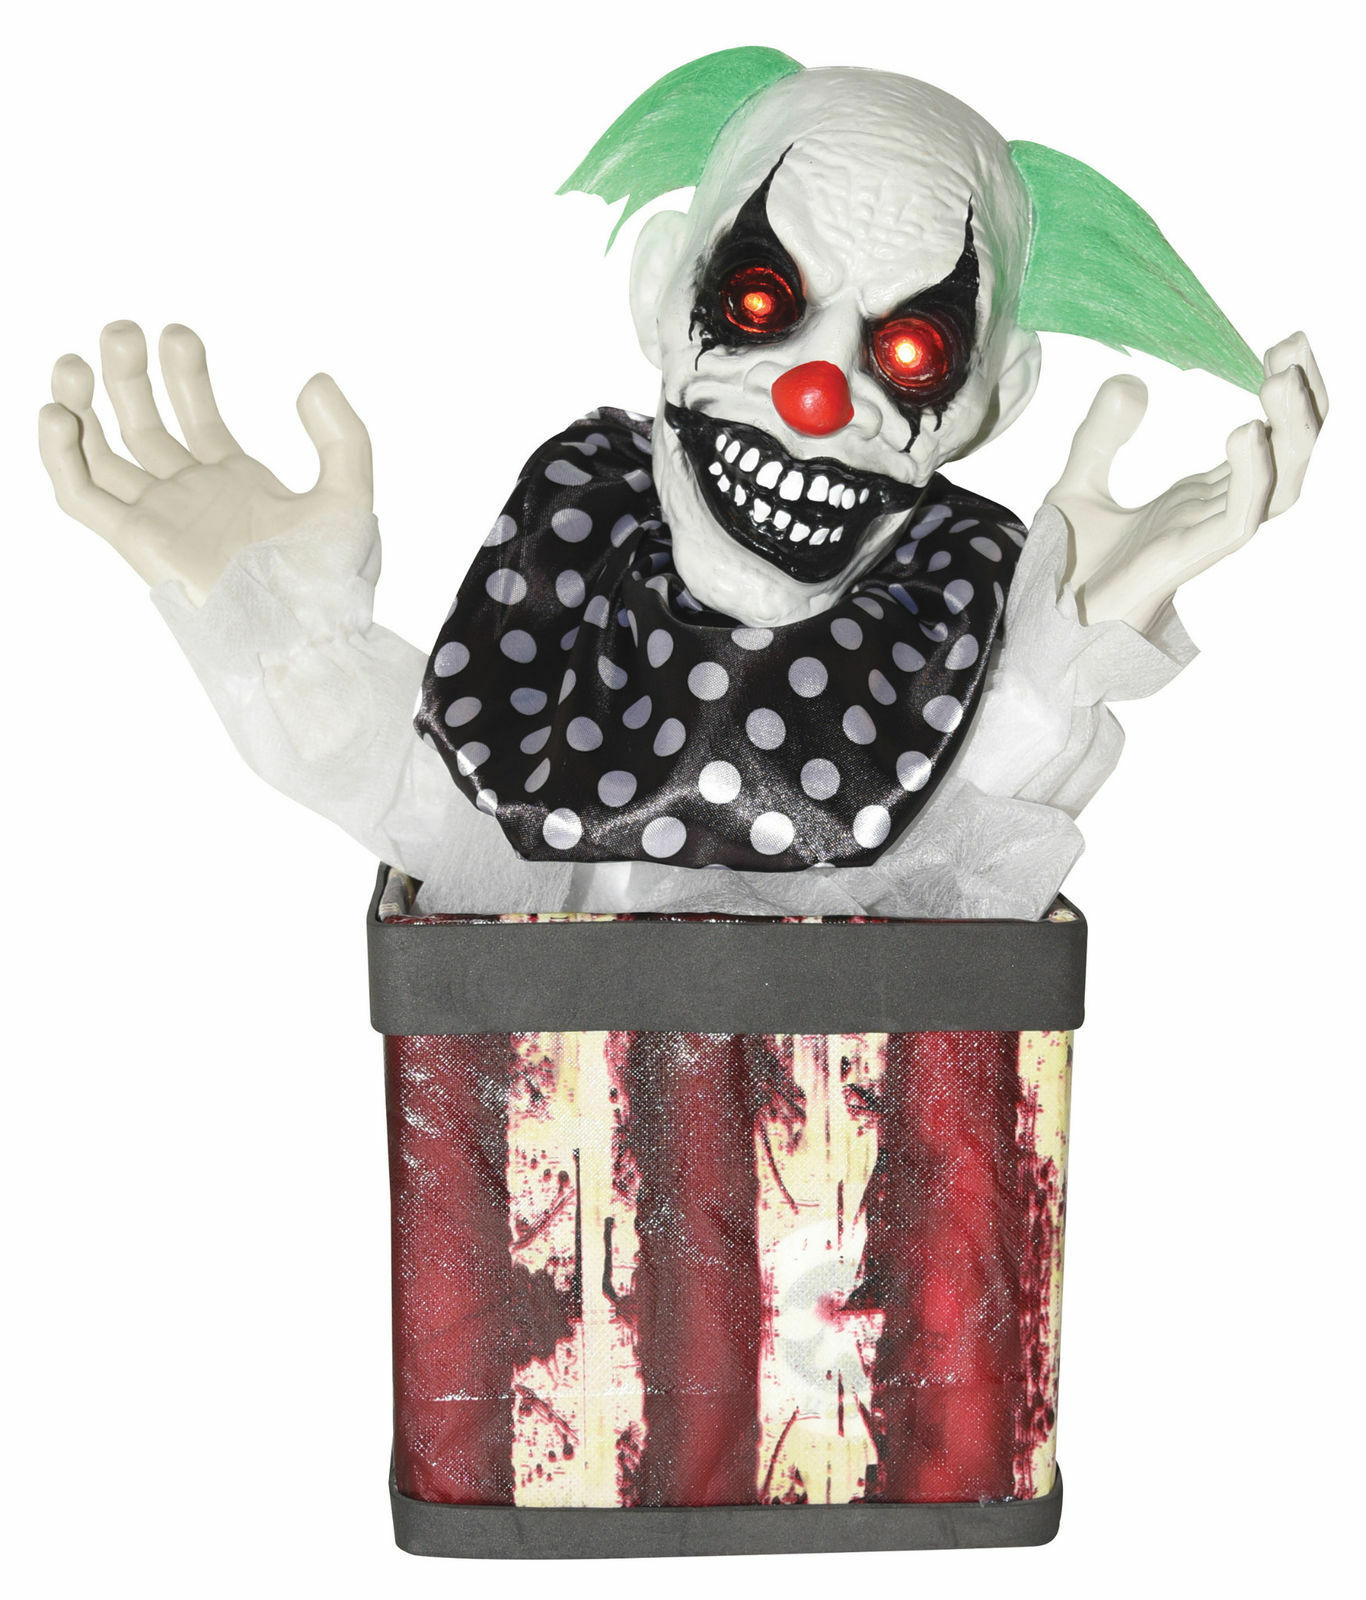 NEW Scary Light Up Sounds Animated Clown in A Box Halloween Prop Decoration